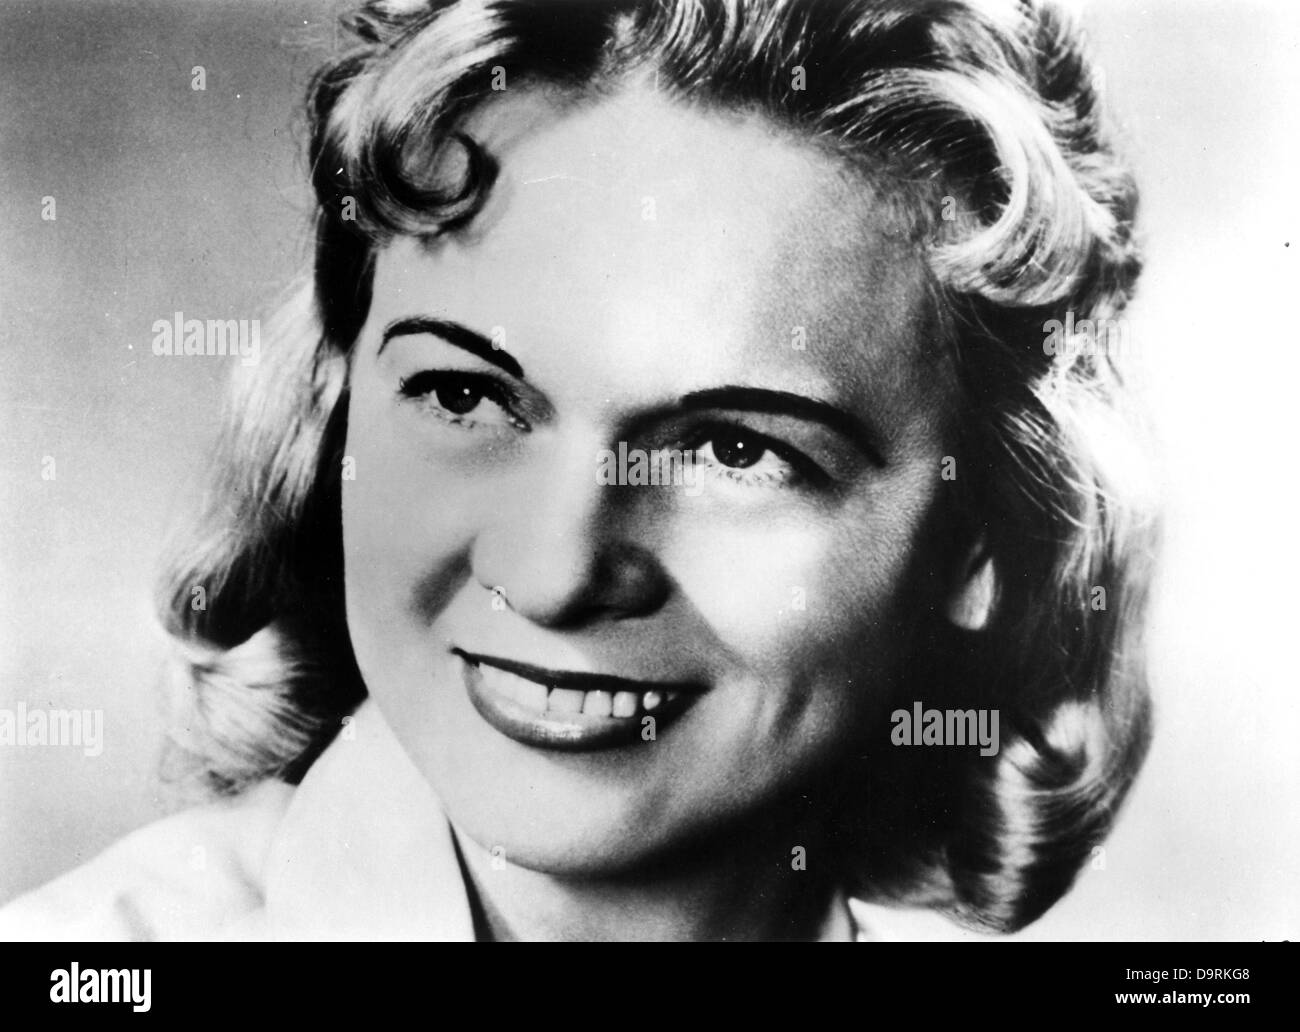 JEAN SHEPARD  US Honky-tonk singer songwriter about 1956 - Stock Image